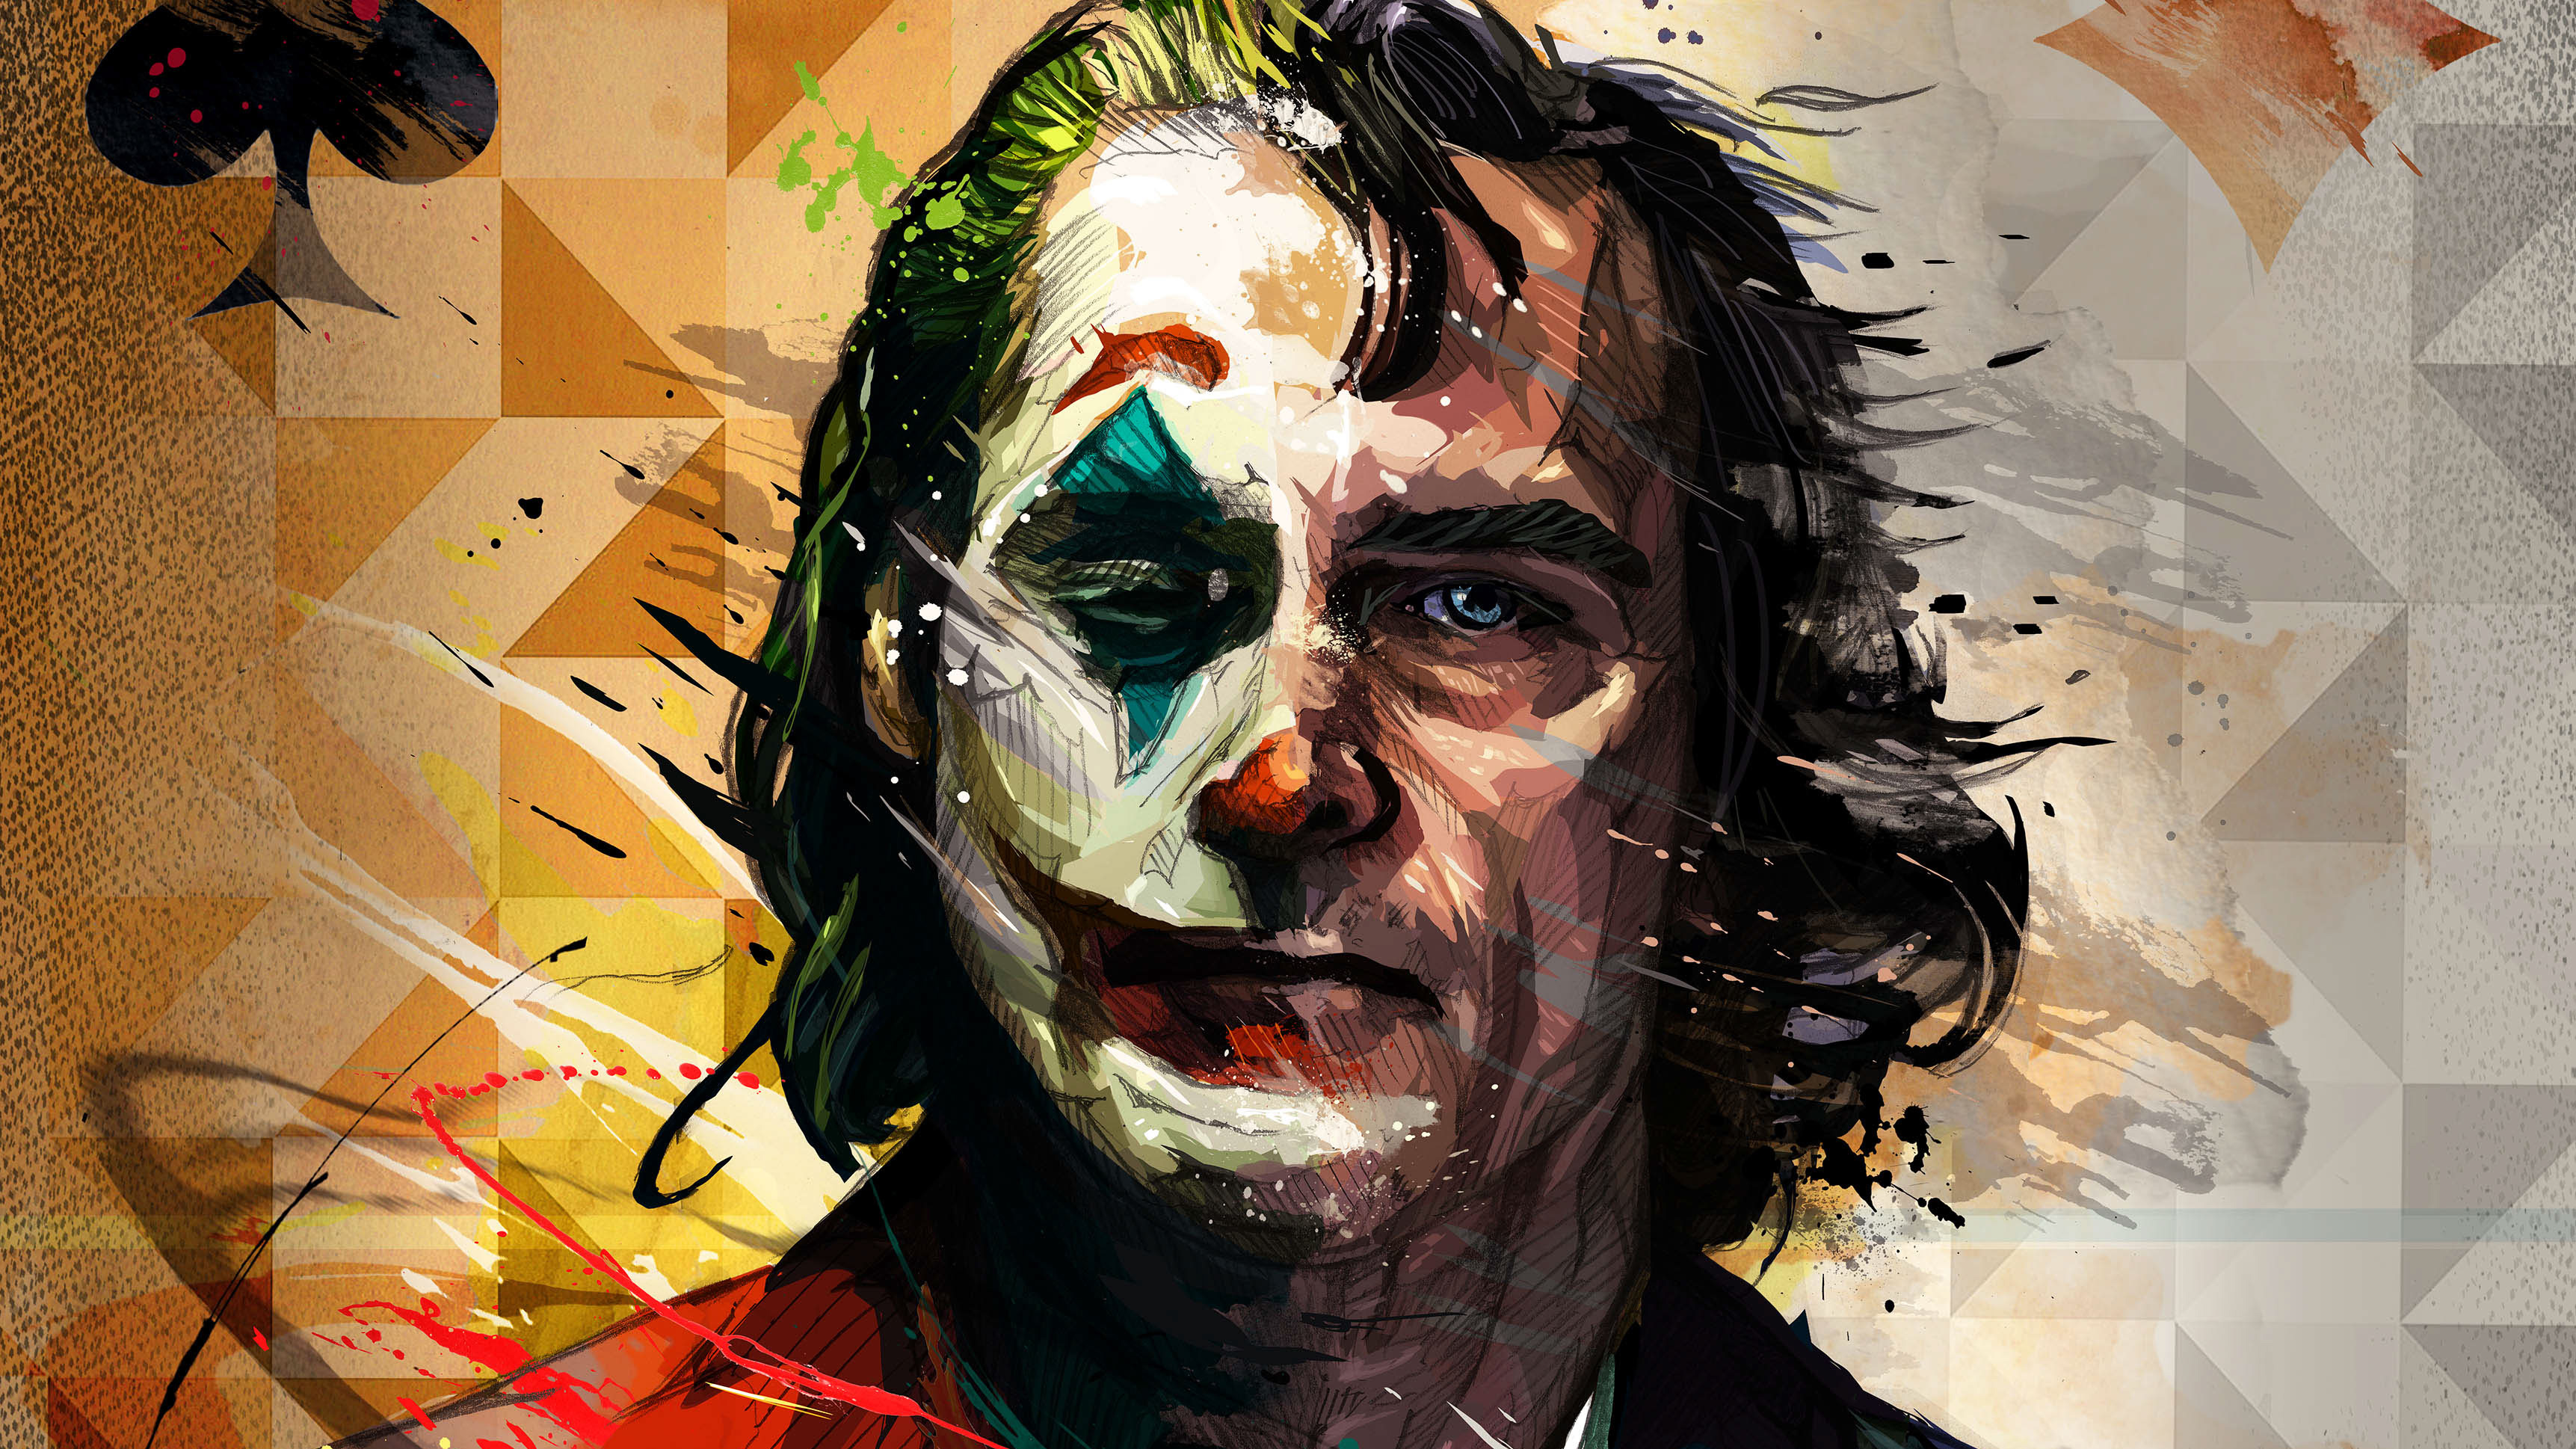 Joker 2019 Artwork, HD Superheroes, 4k Wallpapers, Images ...